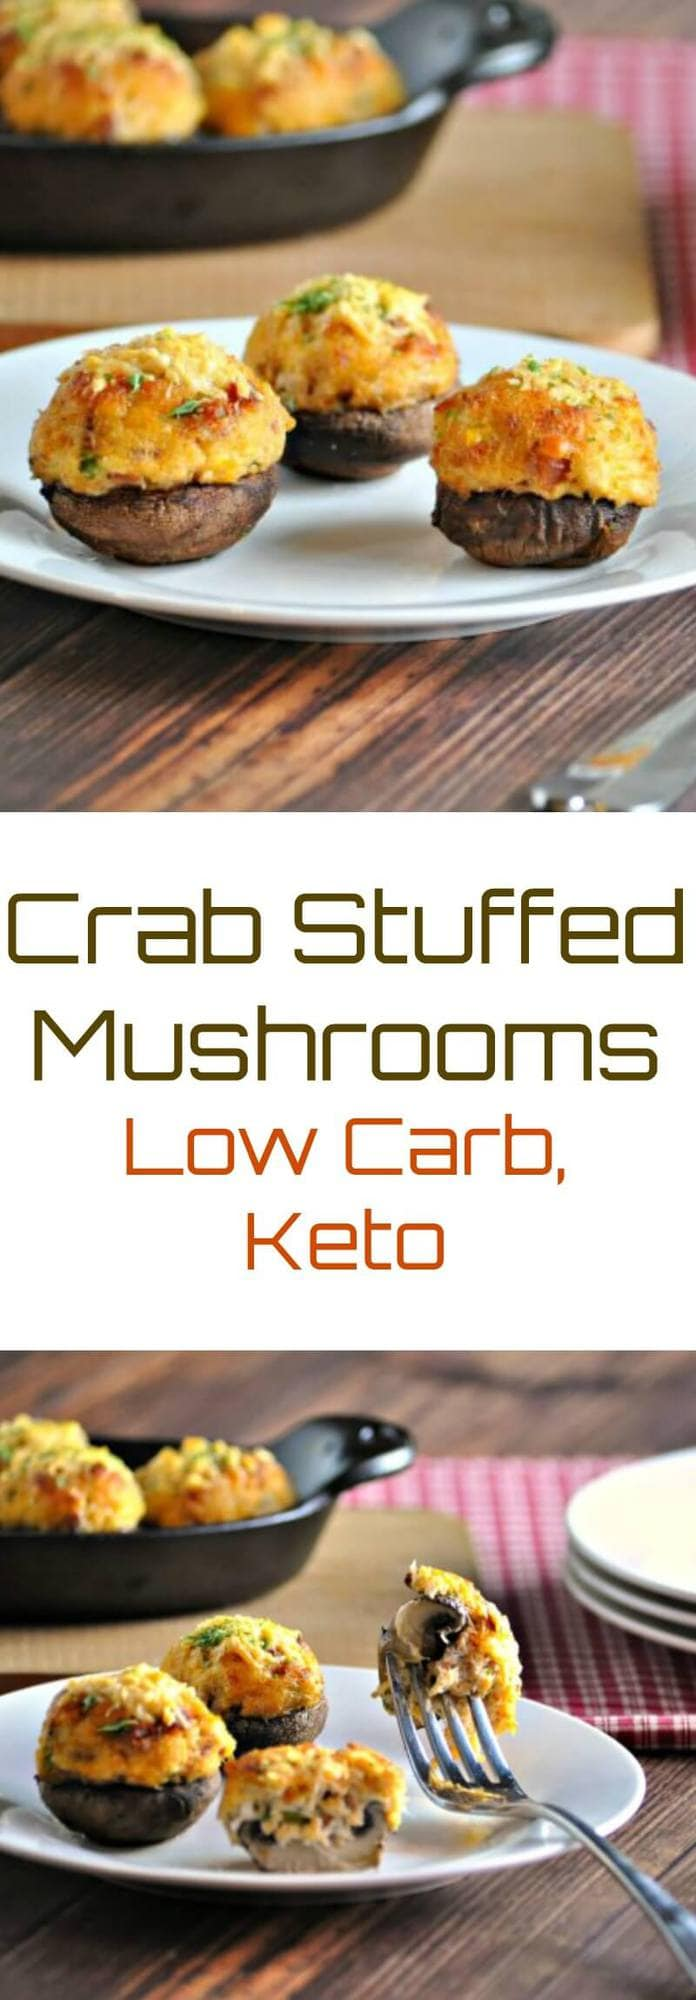 crab stuffed mushrooms with bacon  low carb gluten free